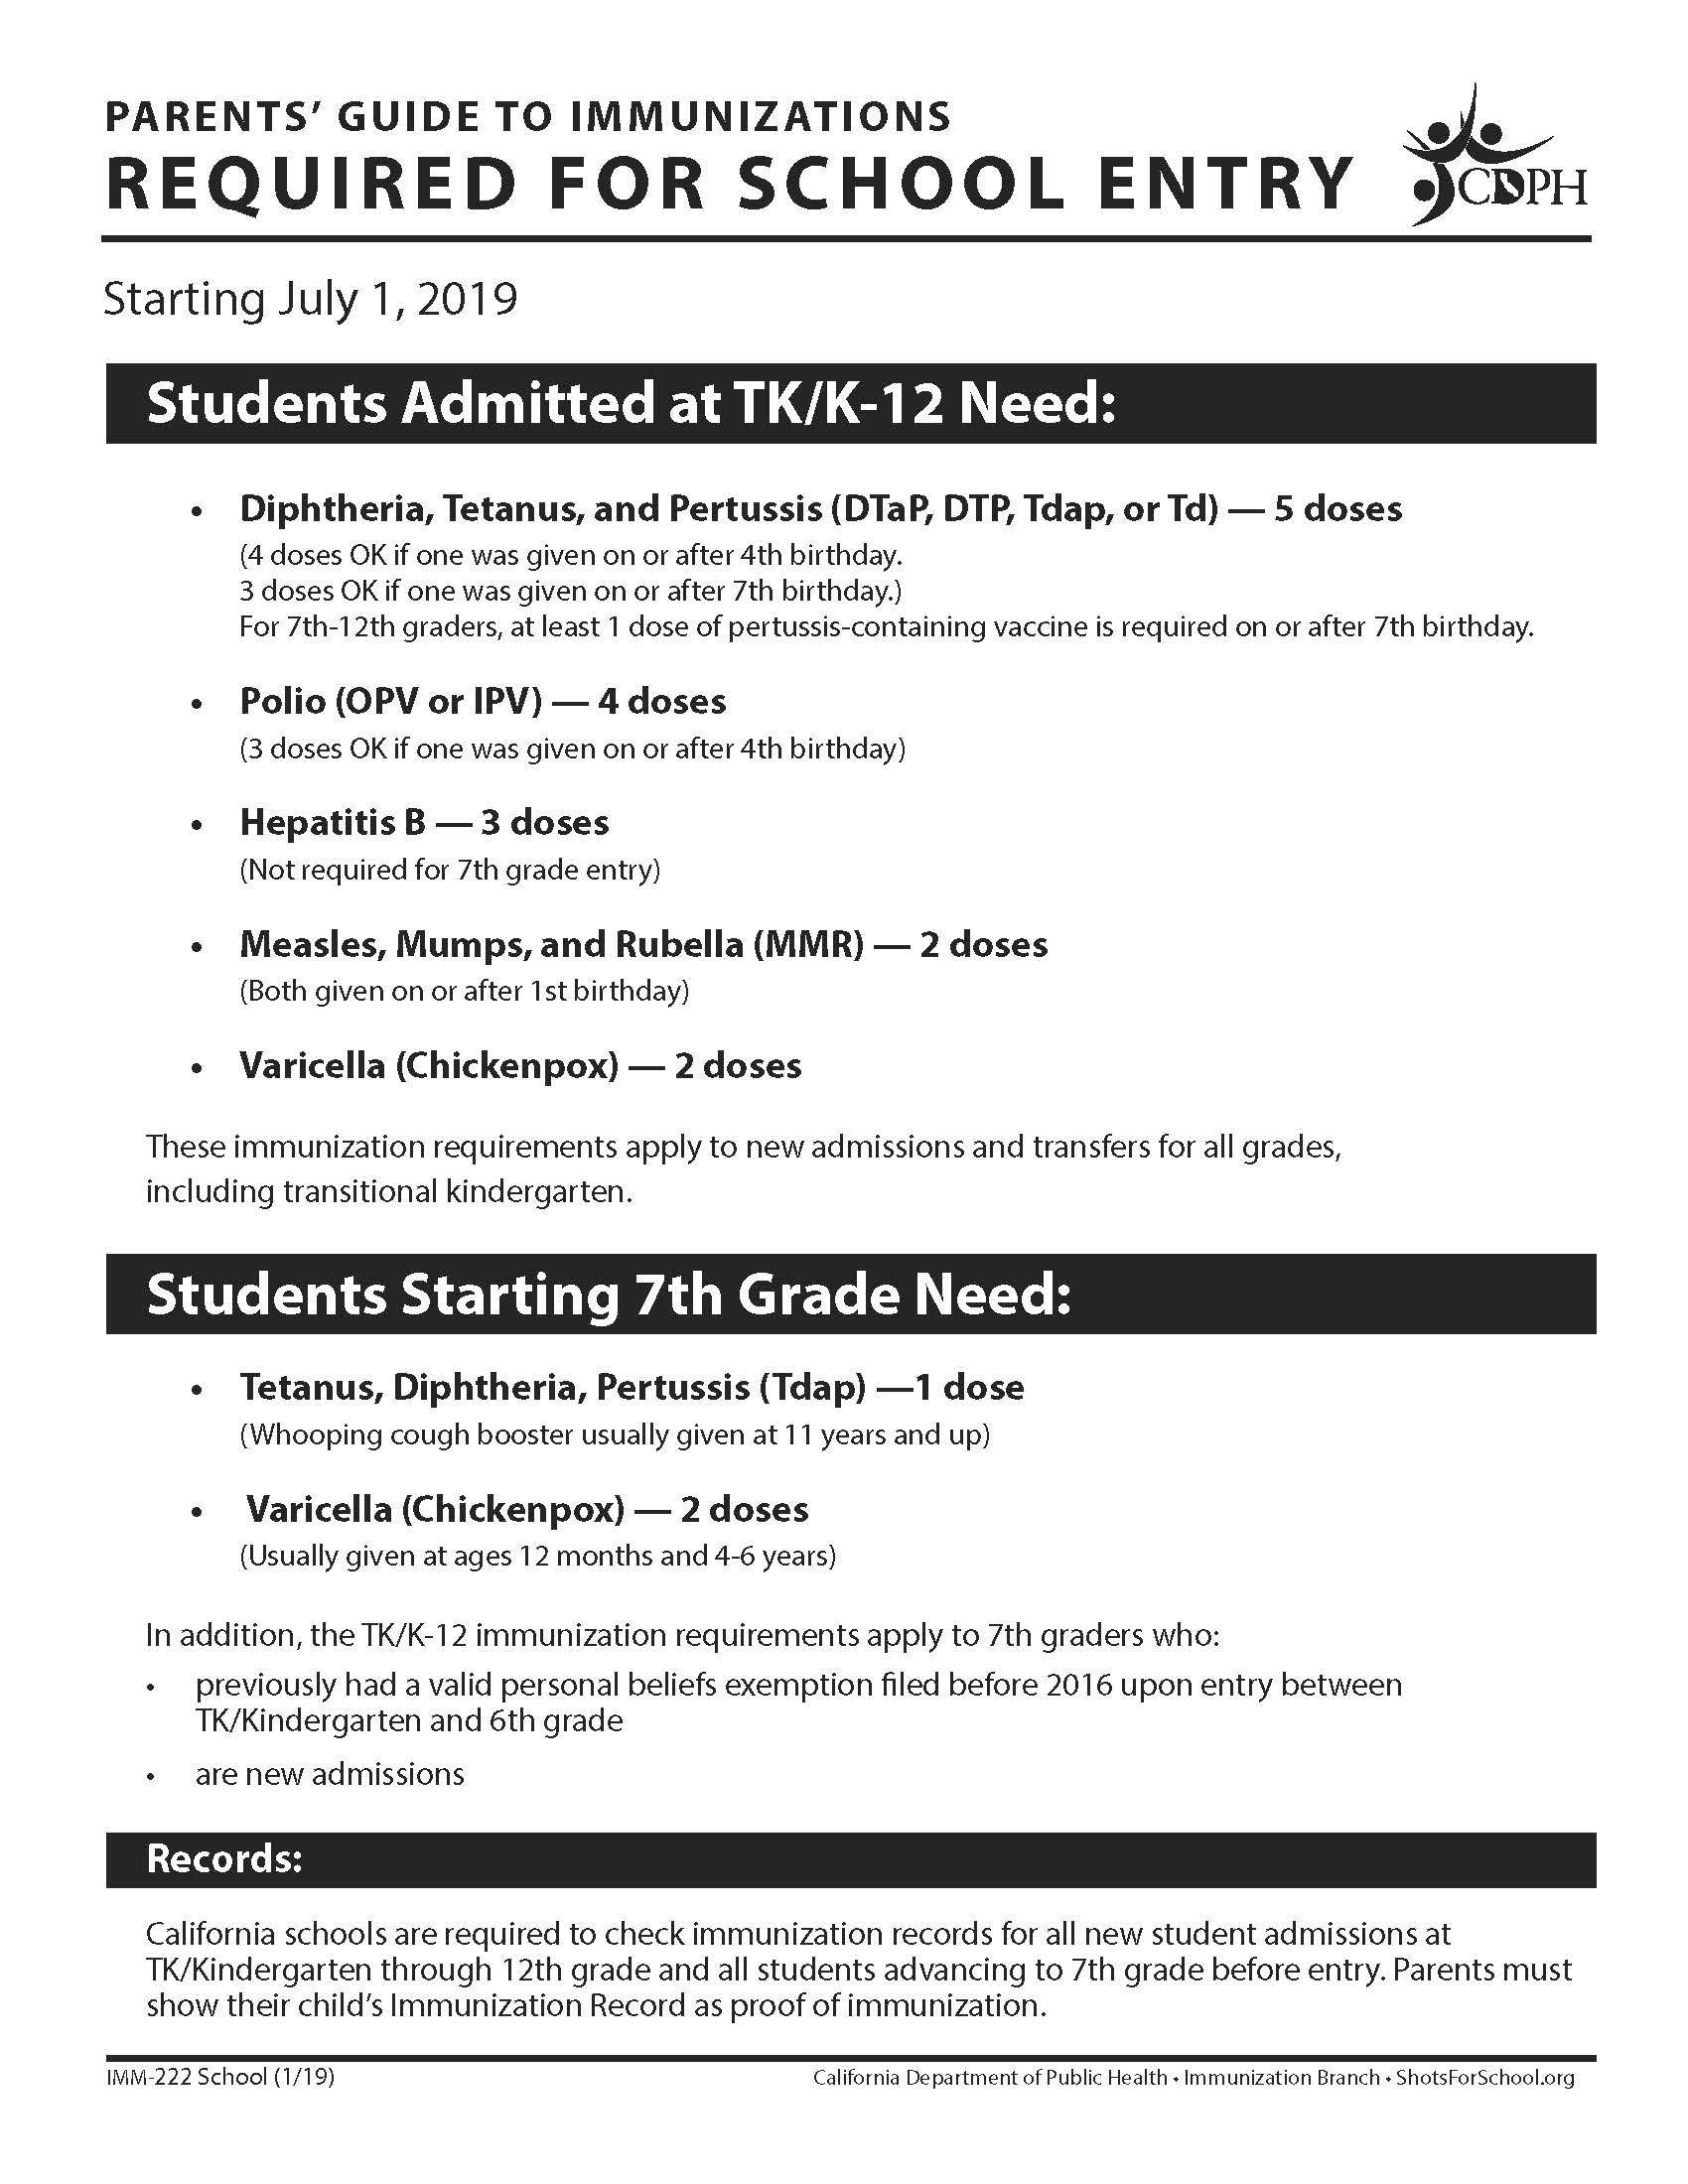 July 2019 Immunization Requirements for School Entry